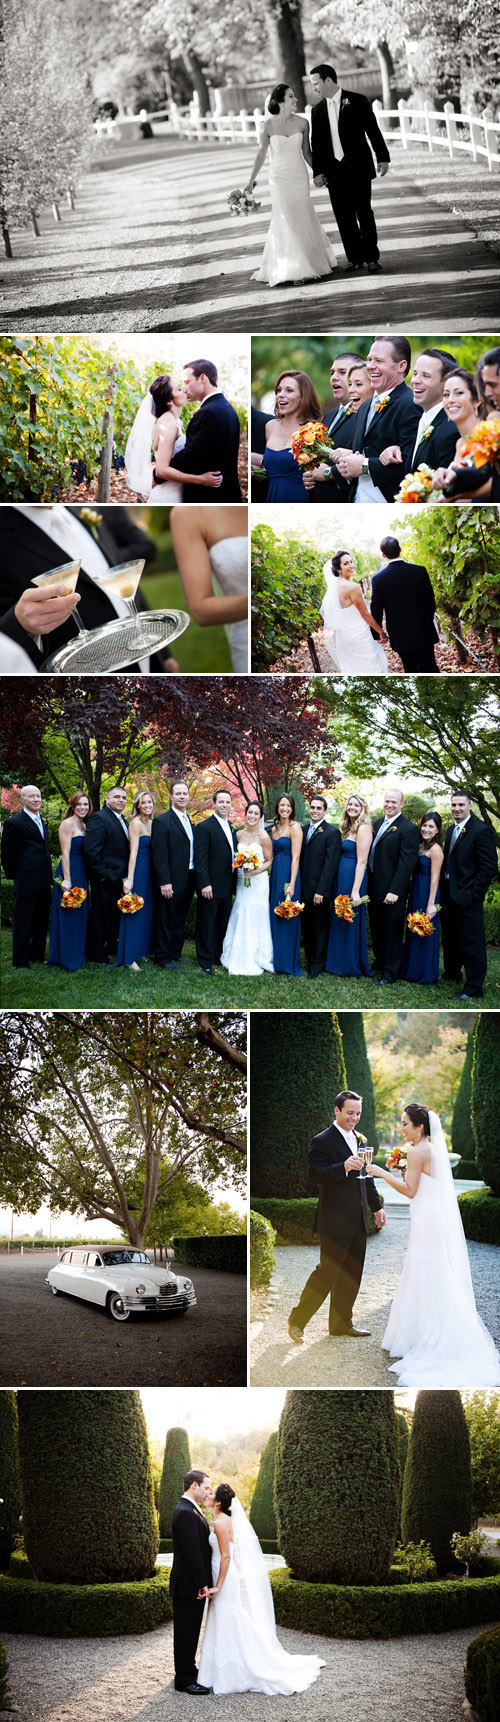 fall real wedding at Beaulieu Gardens in Napa California, photos by Jennifer Bowen Photography